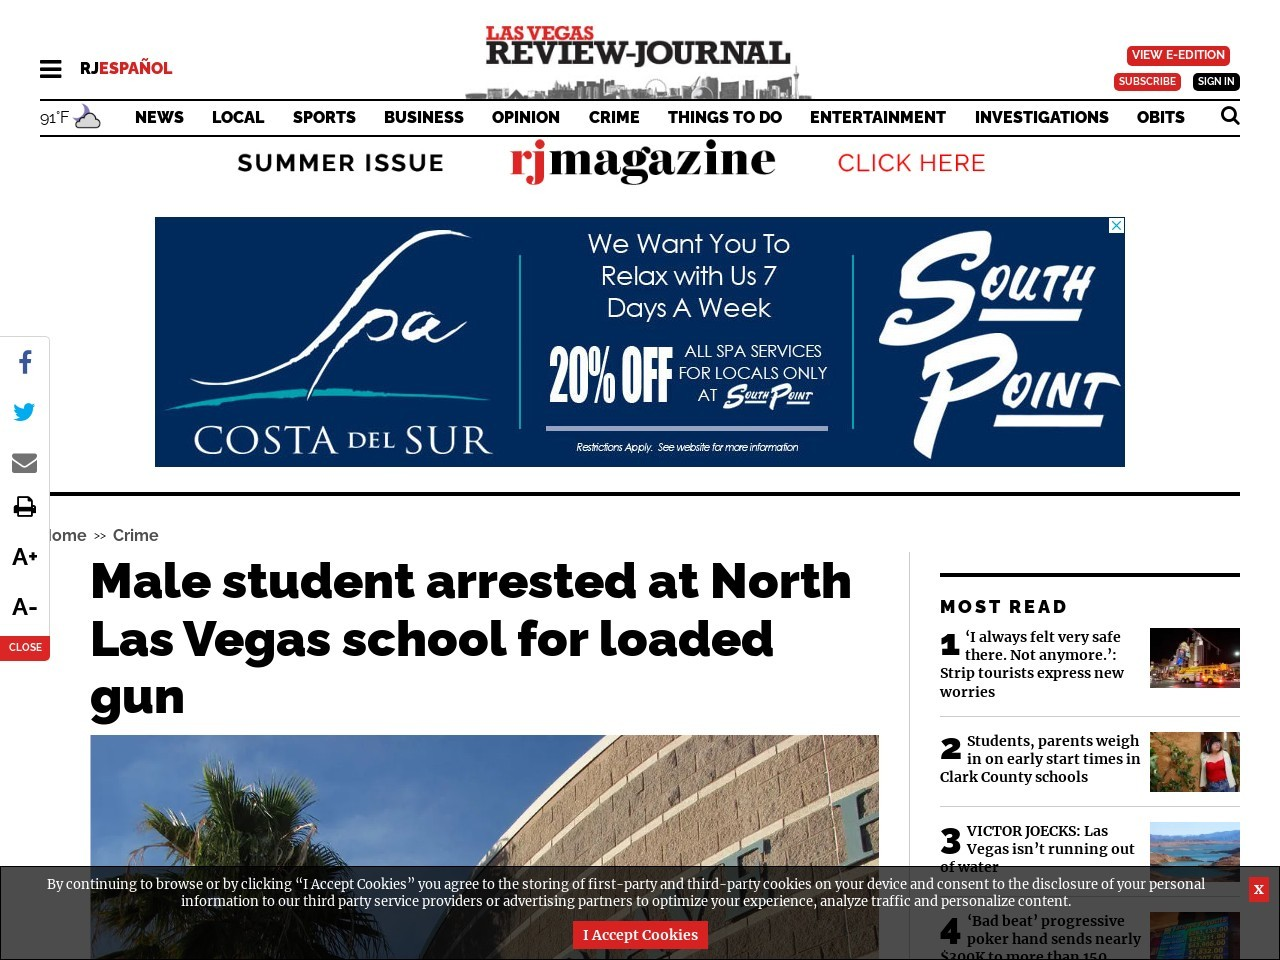 Male student arrested at North Las Vegas school for loaded gun